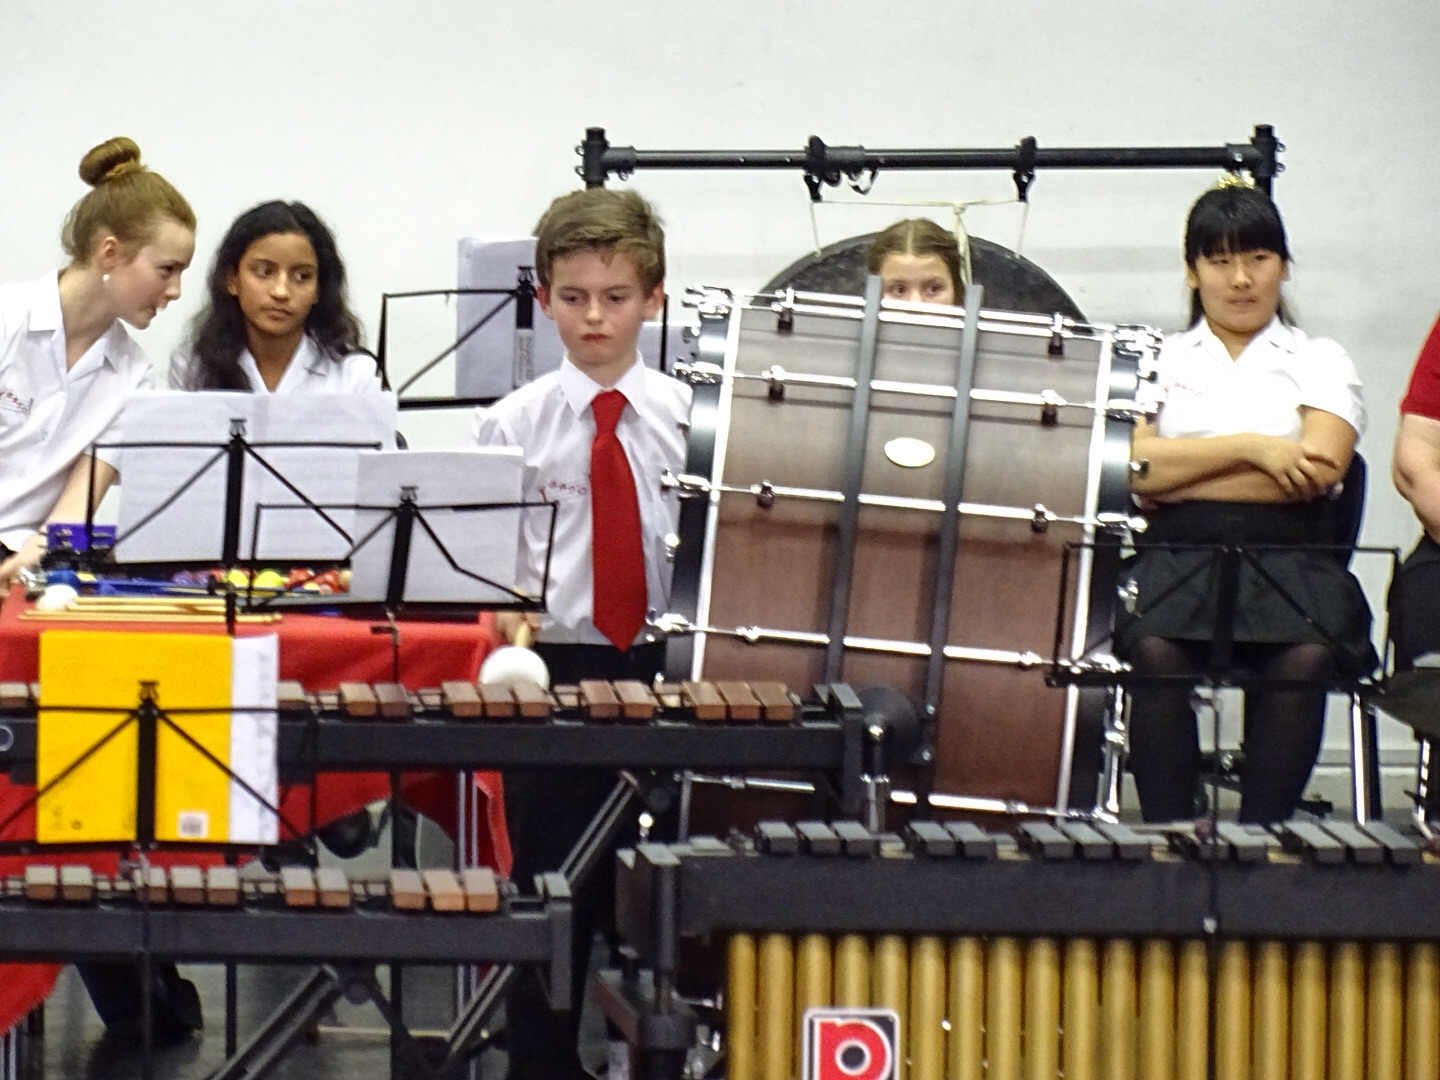 The New Concert Bass Drum in use bought by the charity.